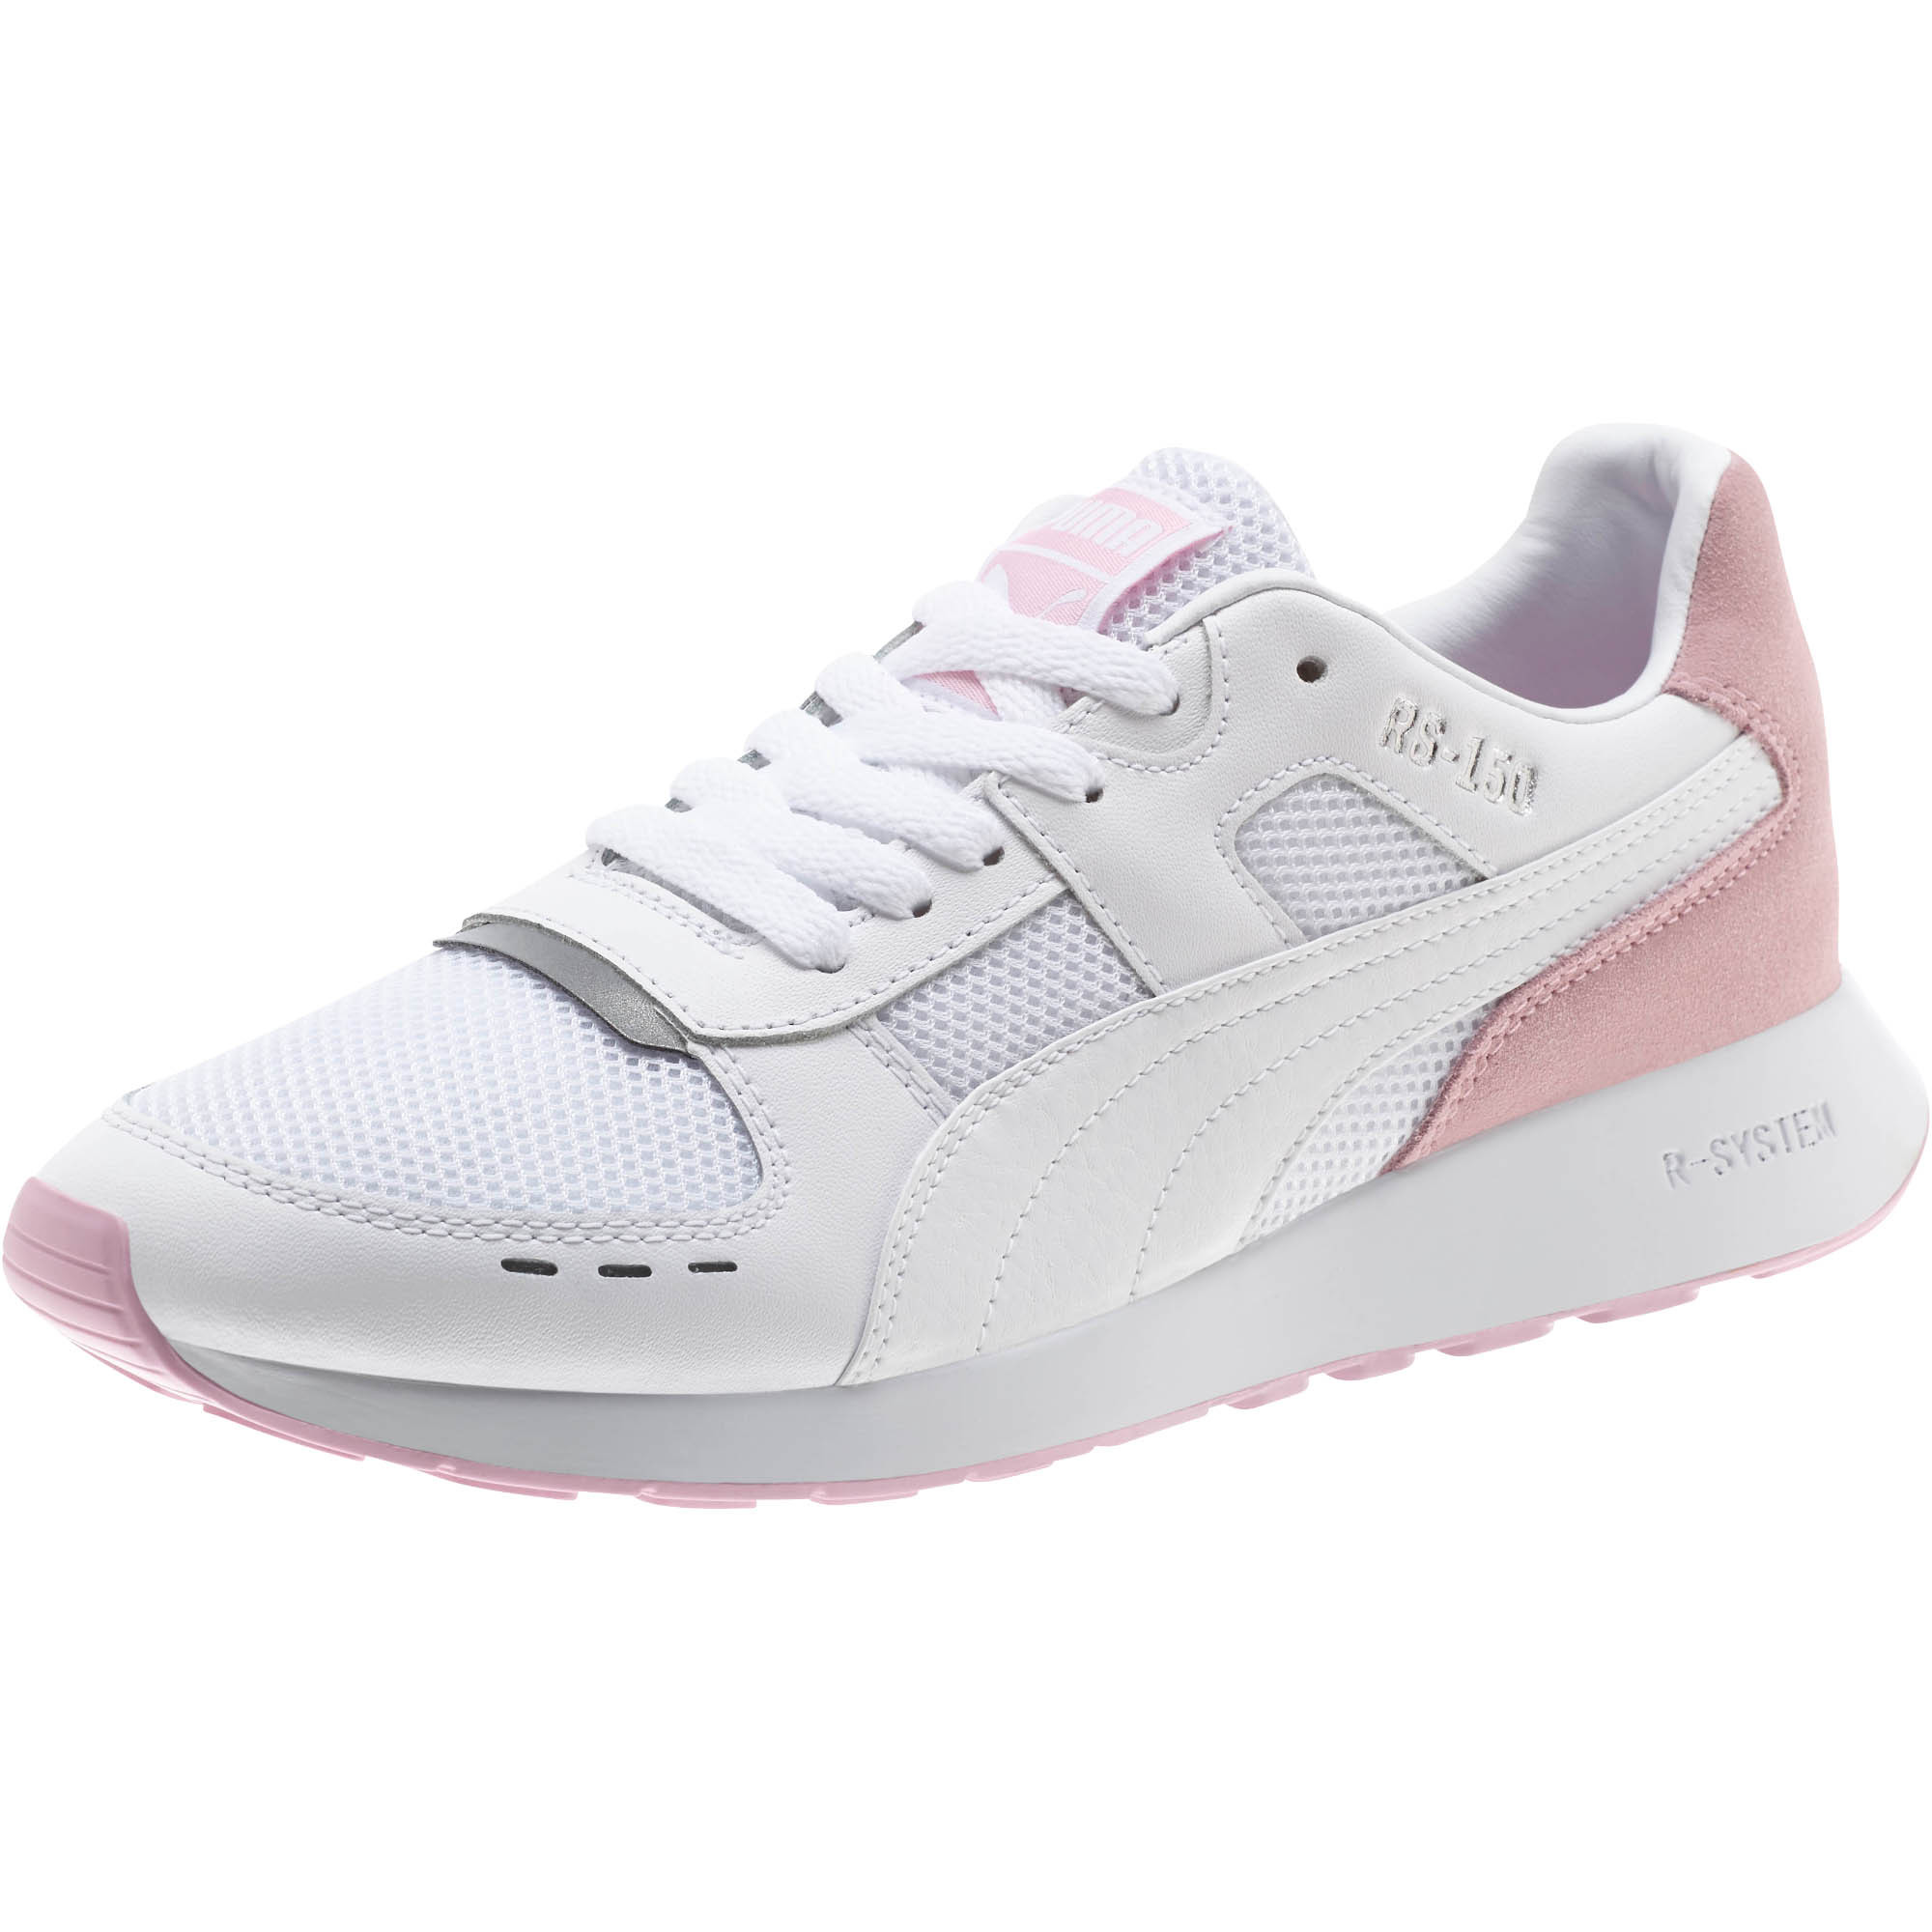 PUMA-Women-039-s-RS-150-Contrast-Sneakers thumbnail 4